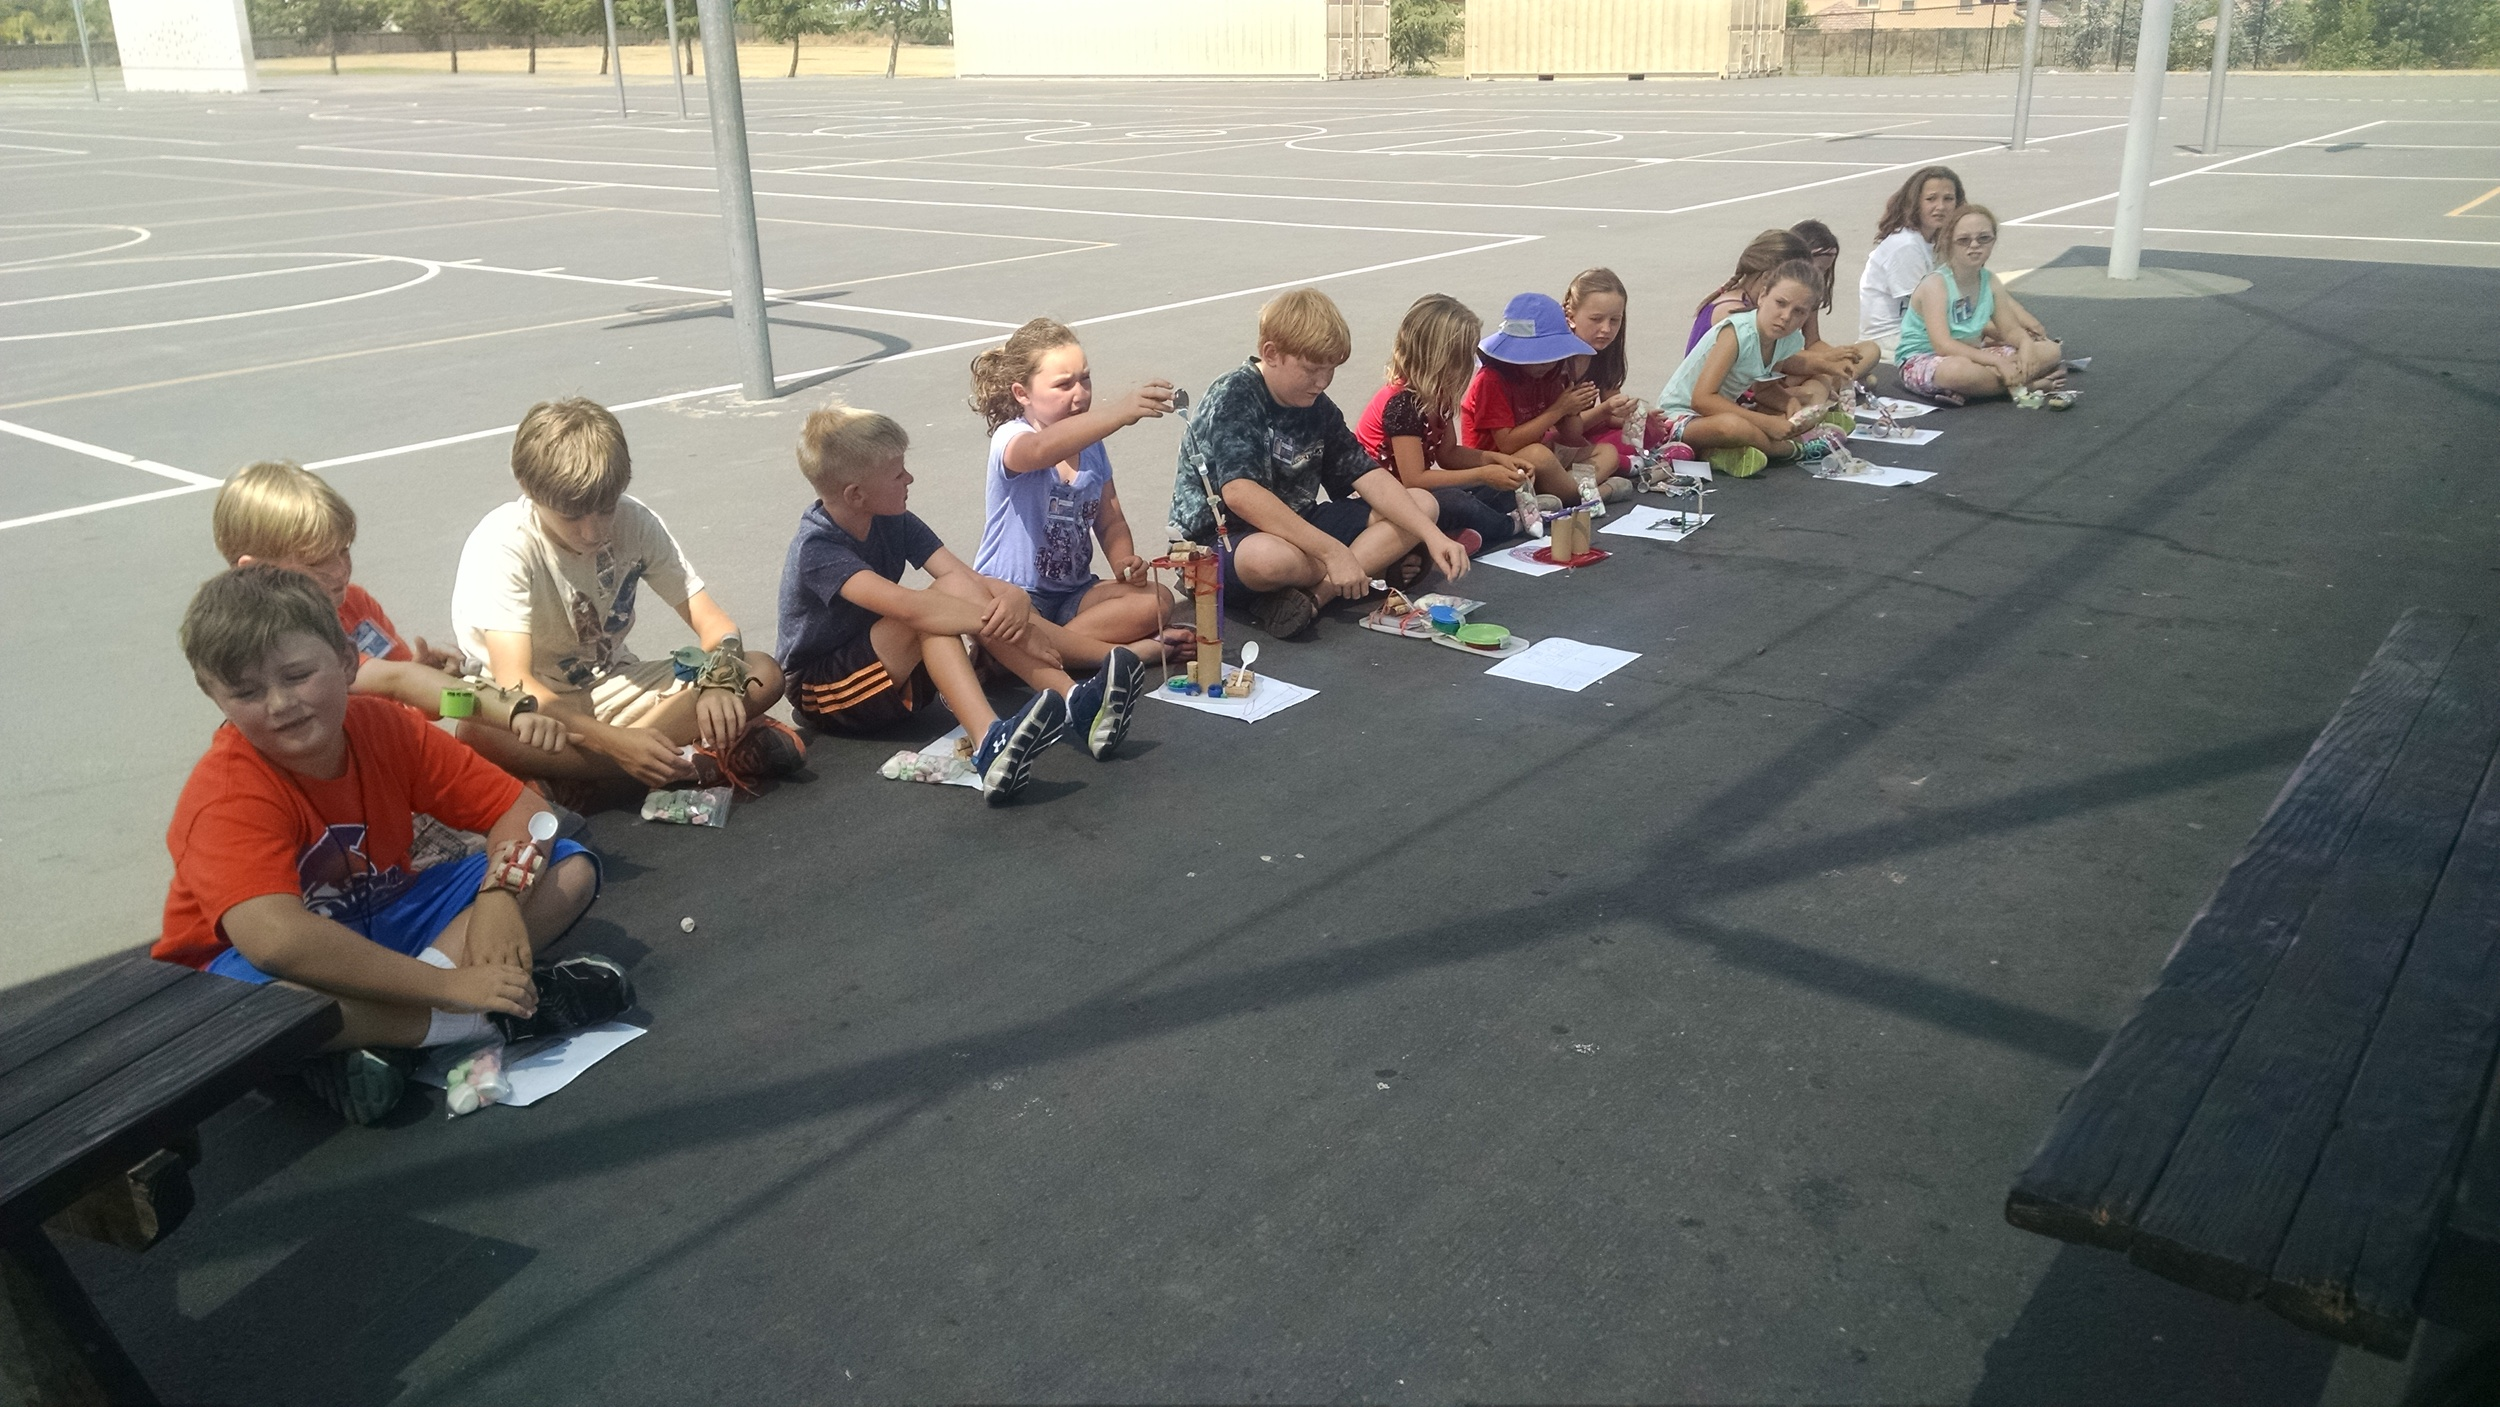 Getting ready to launch their catapults.